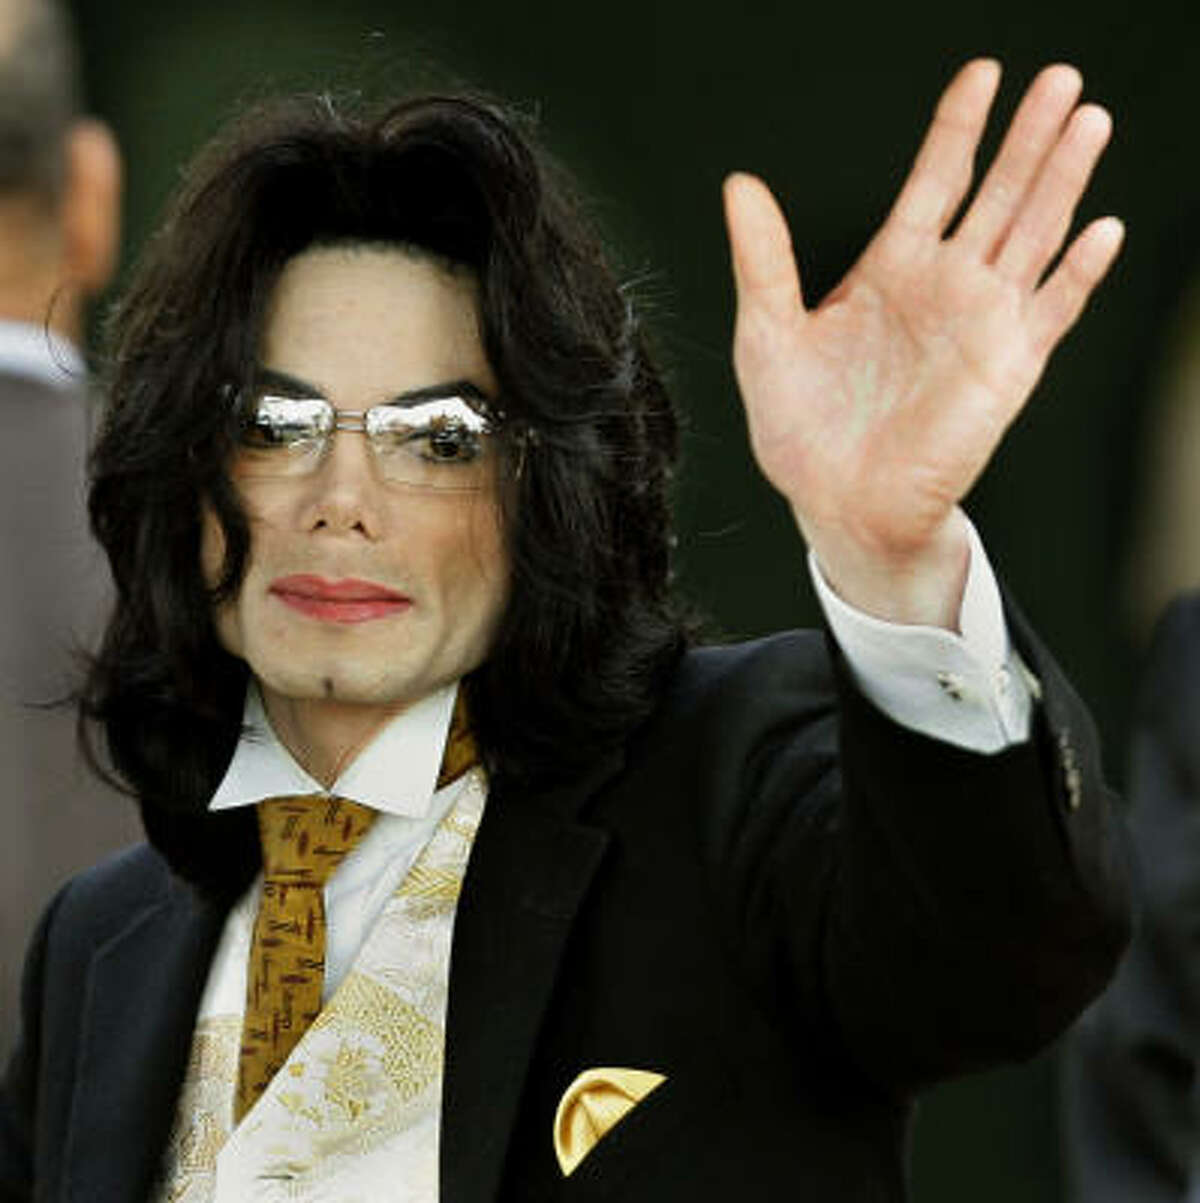 Michael Jackson's addiction to prescription drugs has come to light since his death in June.